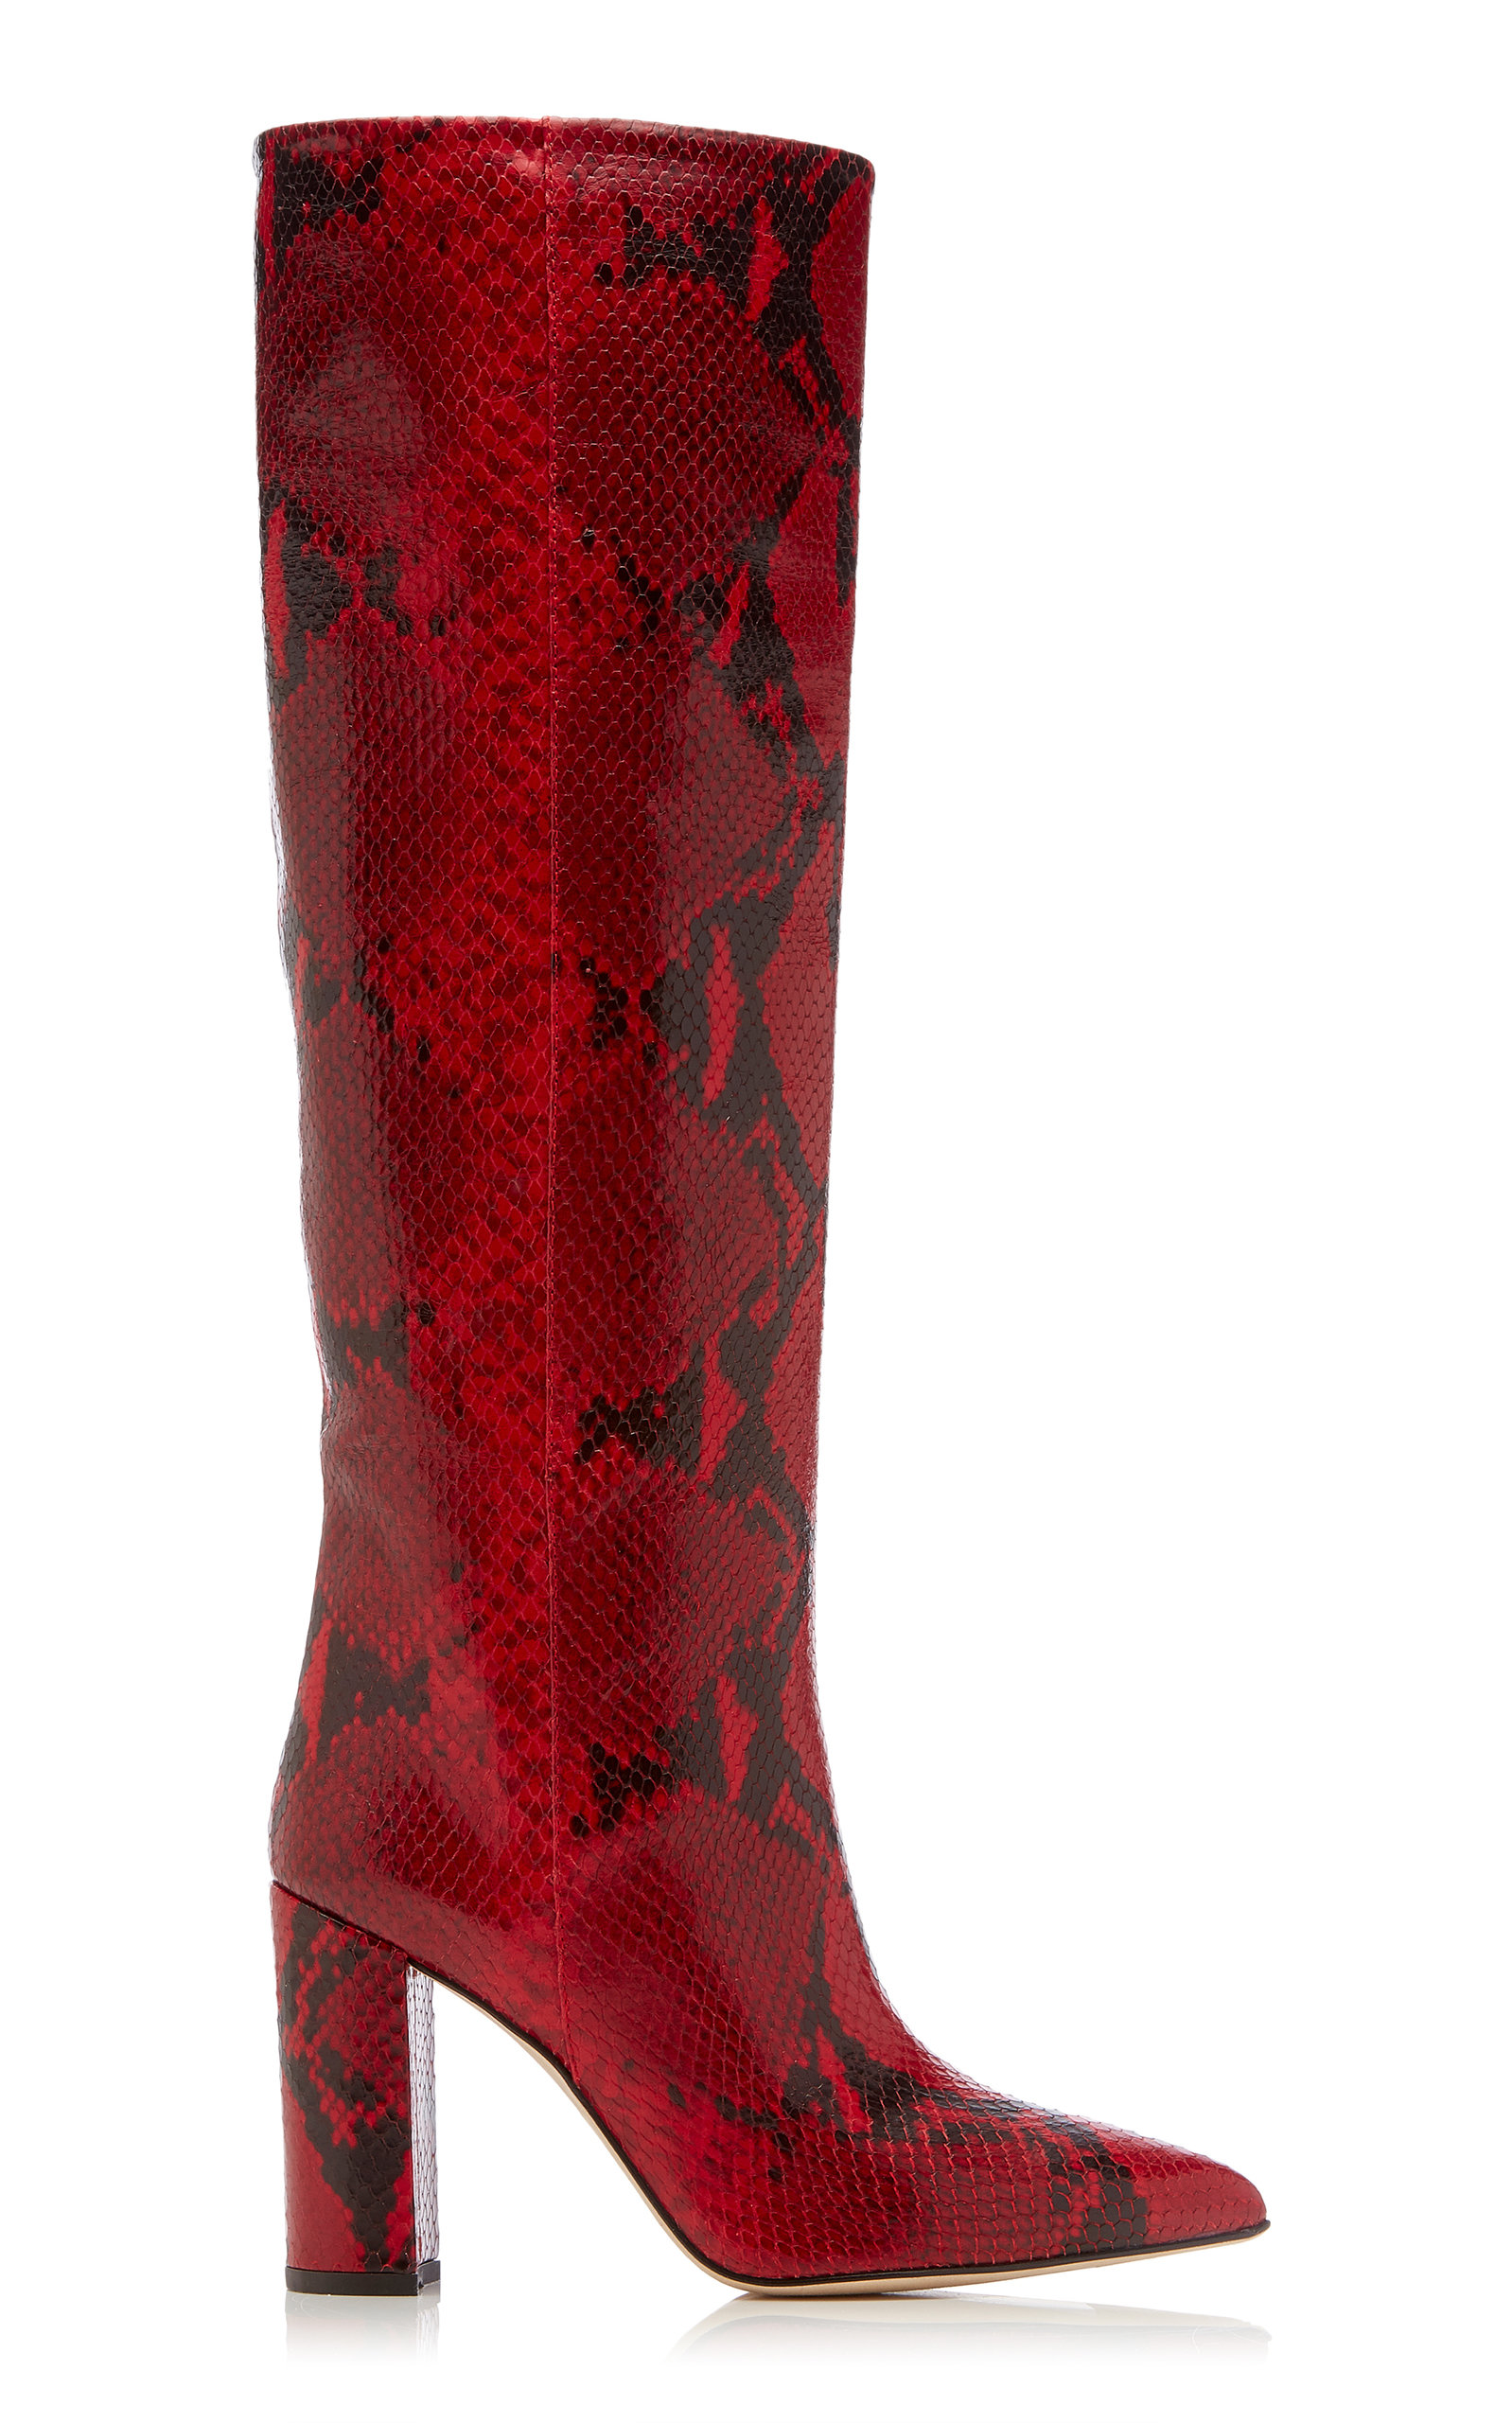 80ef726f519 Paris Texas Snake-Effect Leather Knee Boots. CLOSE. Loading